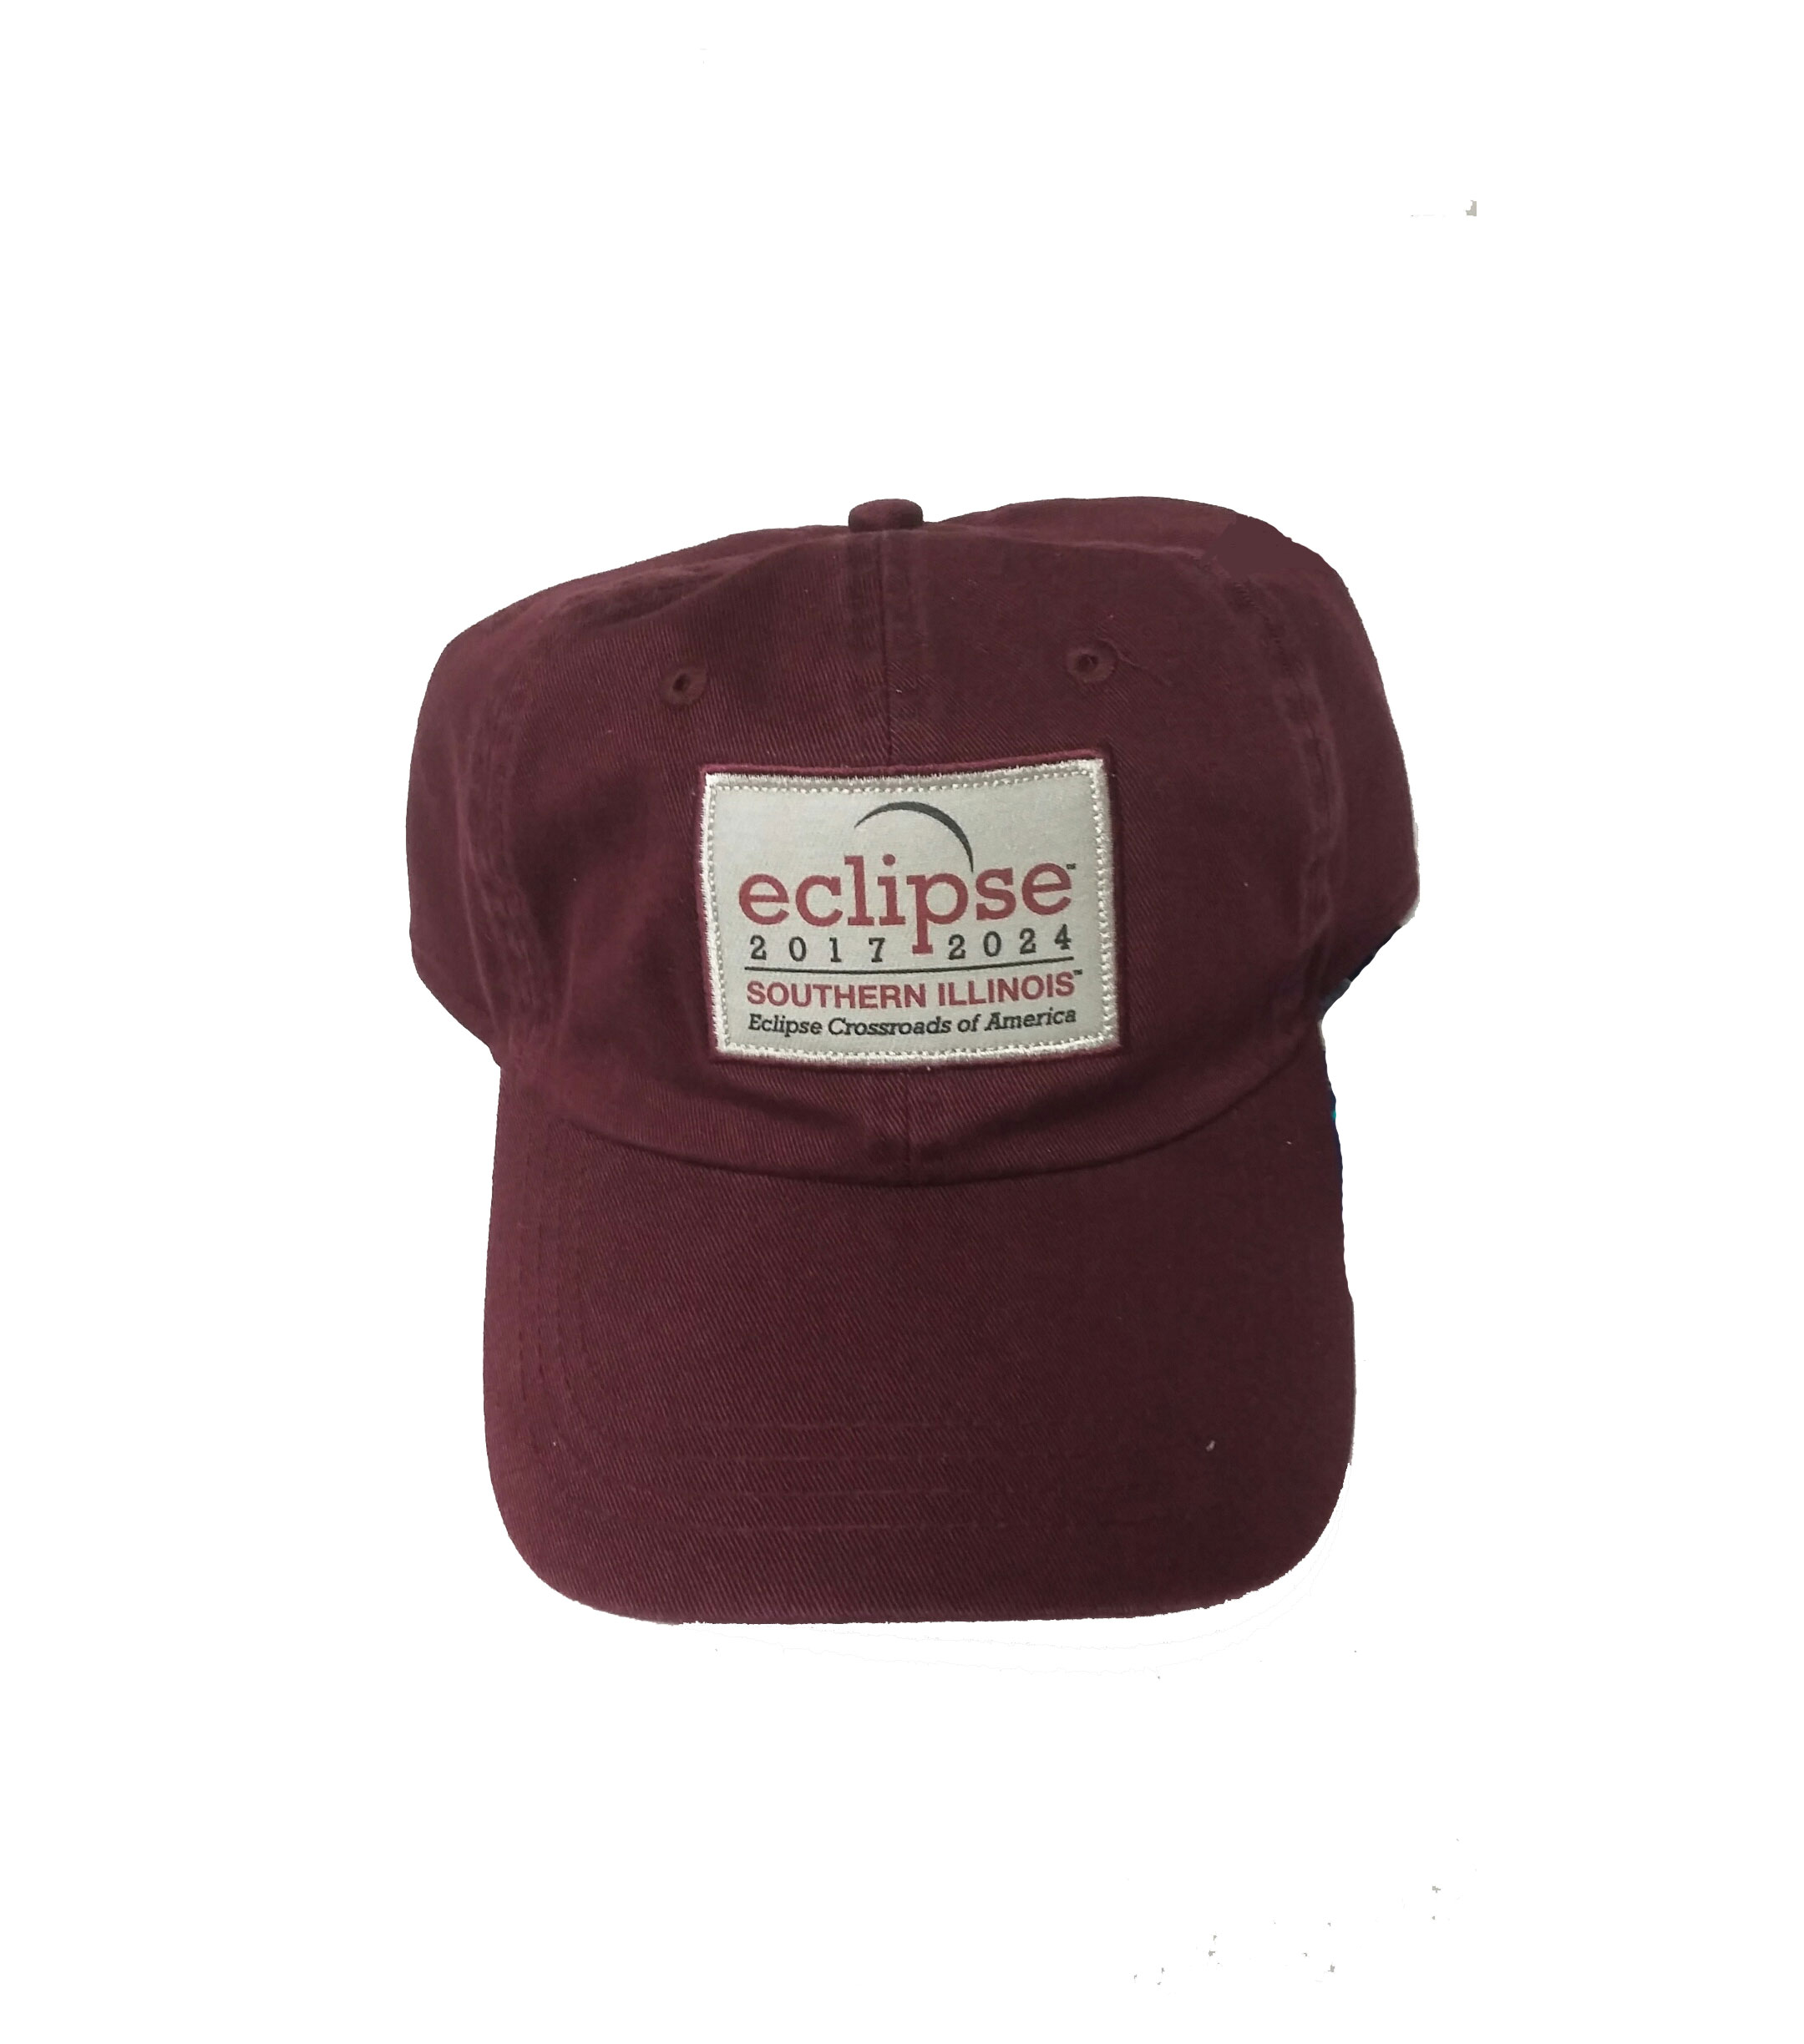 Image for the MAROON ECLIPSE 2017/2024 VINTAGE CLASSIC CAP product